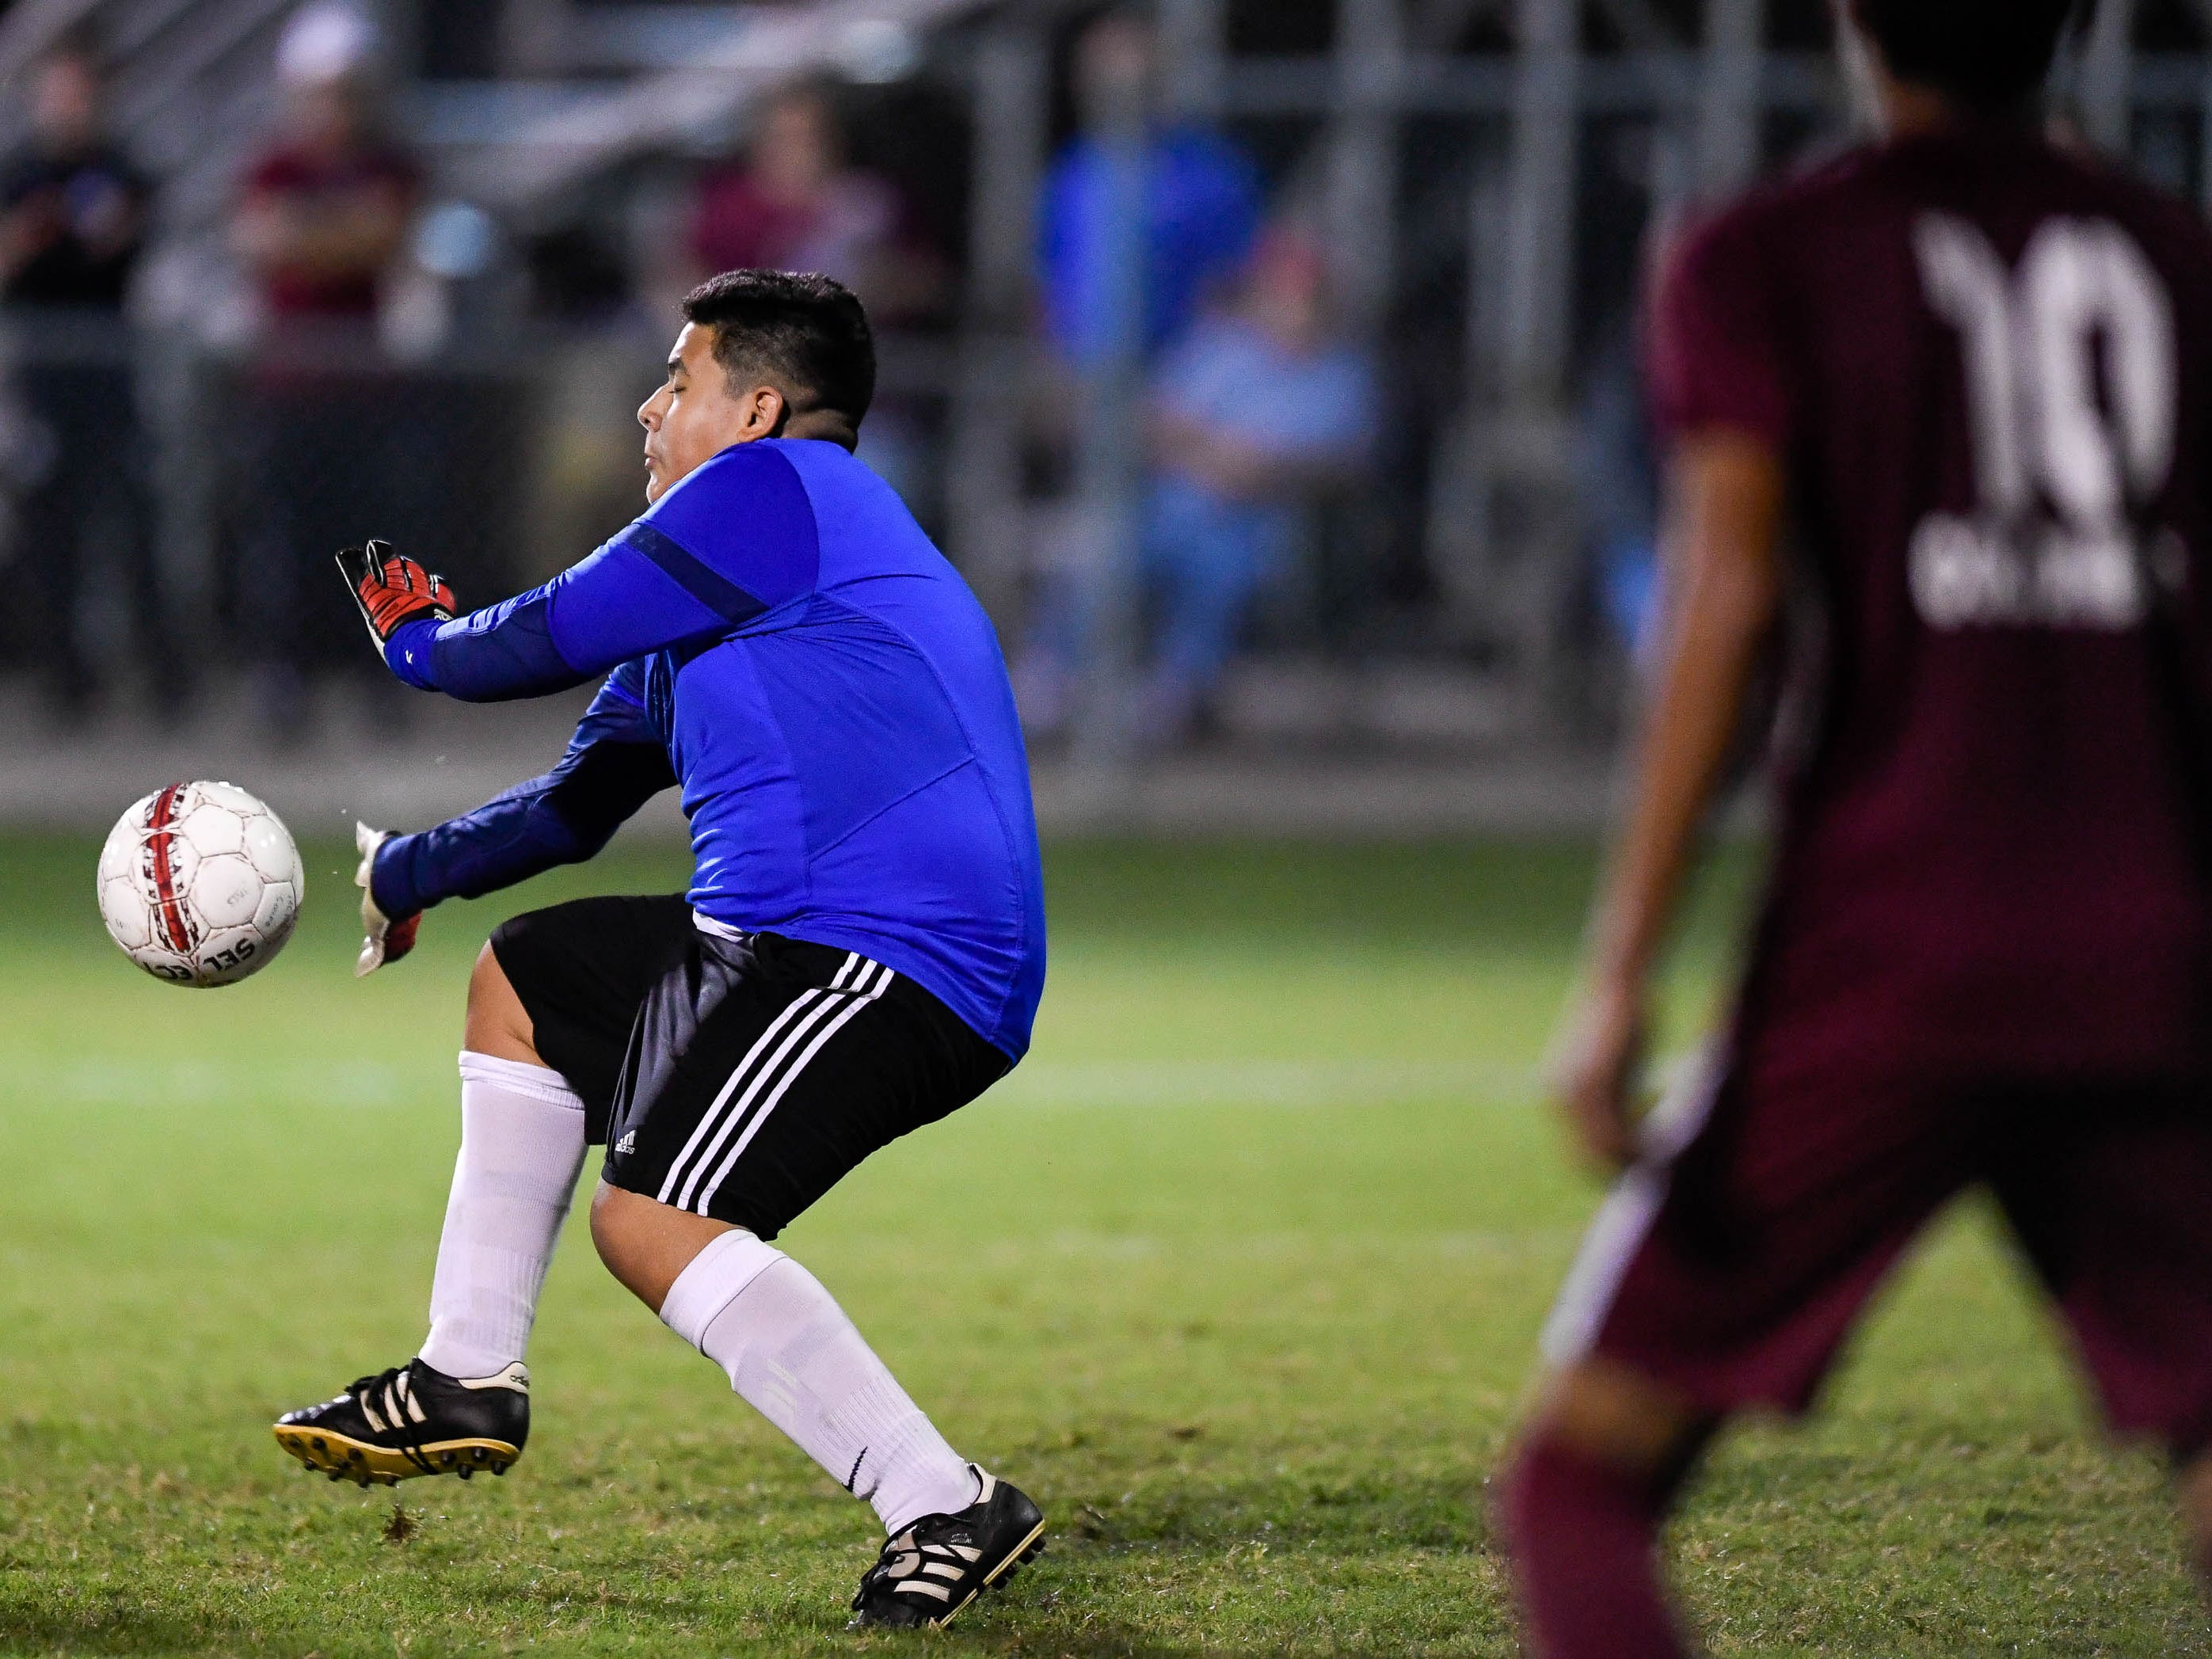 Webster goalie Jorge Torres (14) blocks a shot on goal as the Henderson County Colonels play the Webster County Trojans in the Sixth District Soccer Tournament at Colonel Field Wednesday, October 10, 2018.